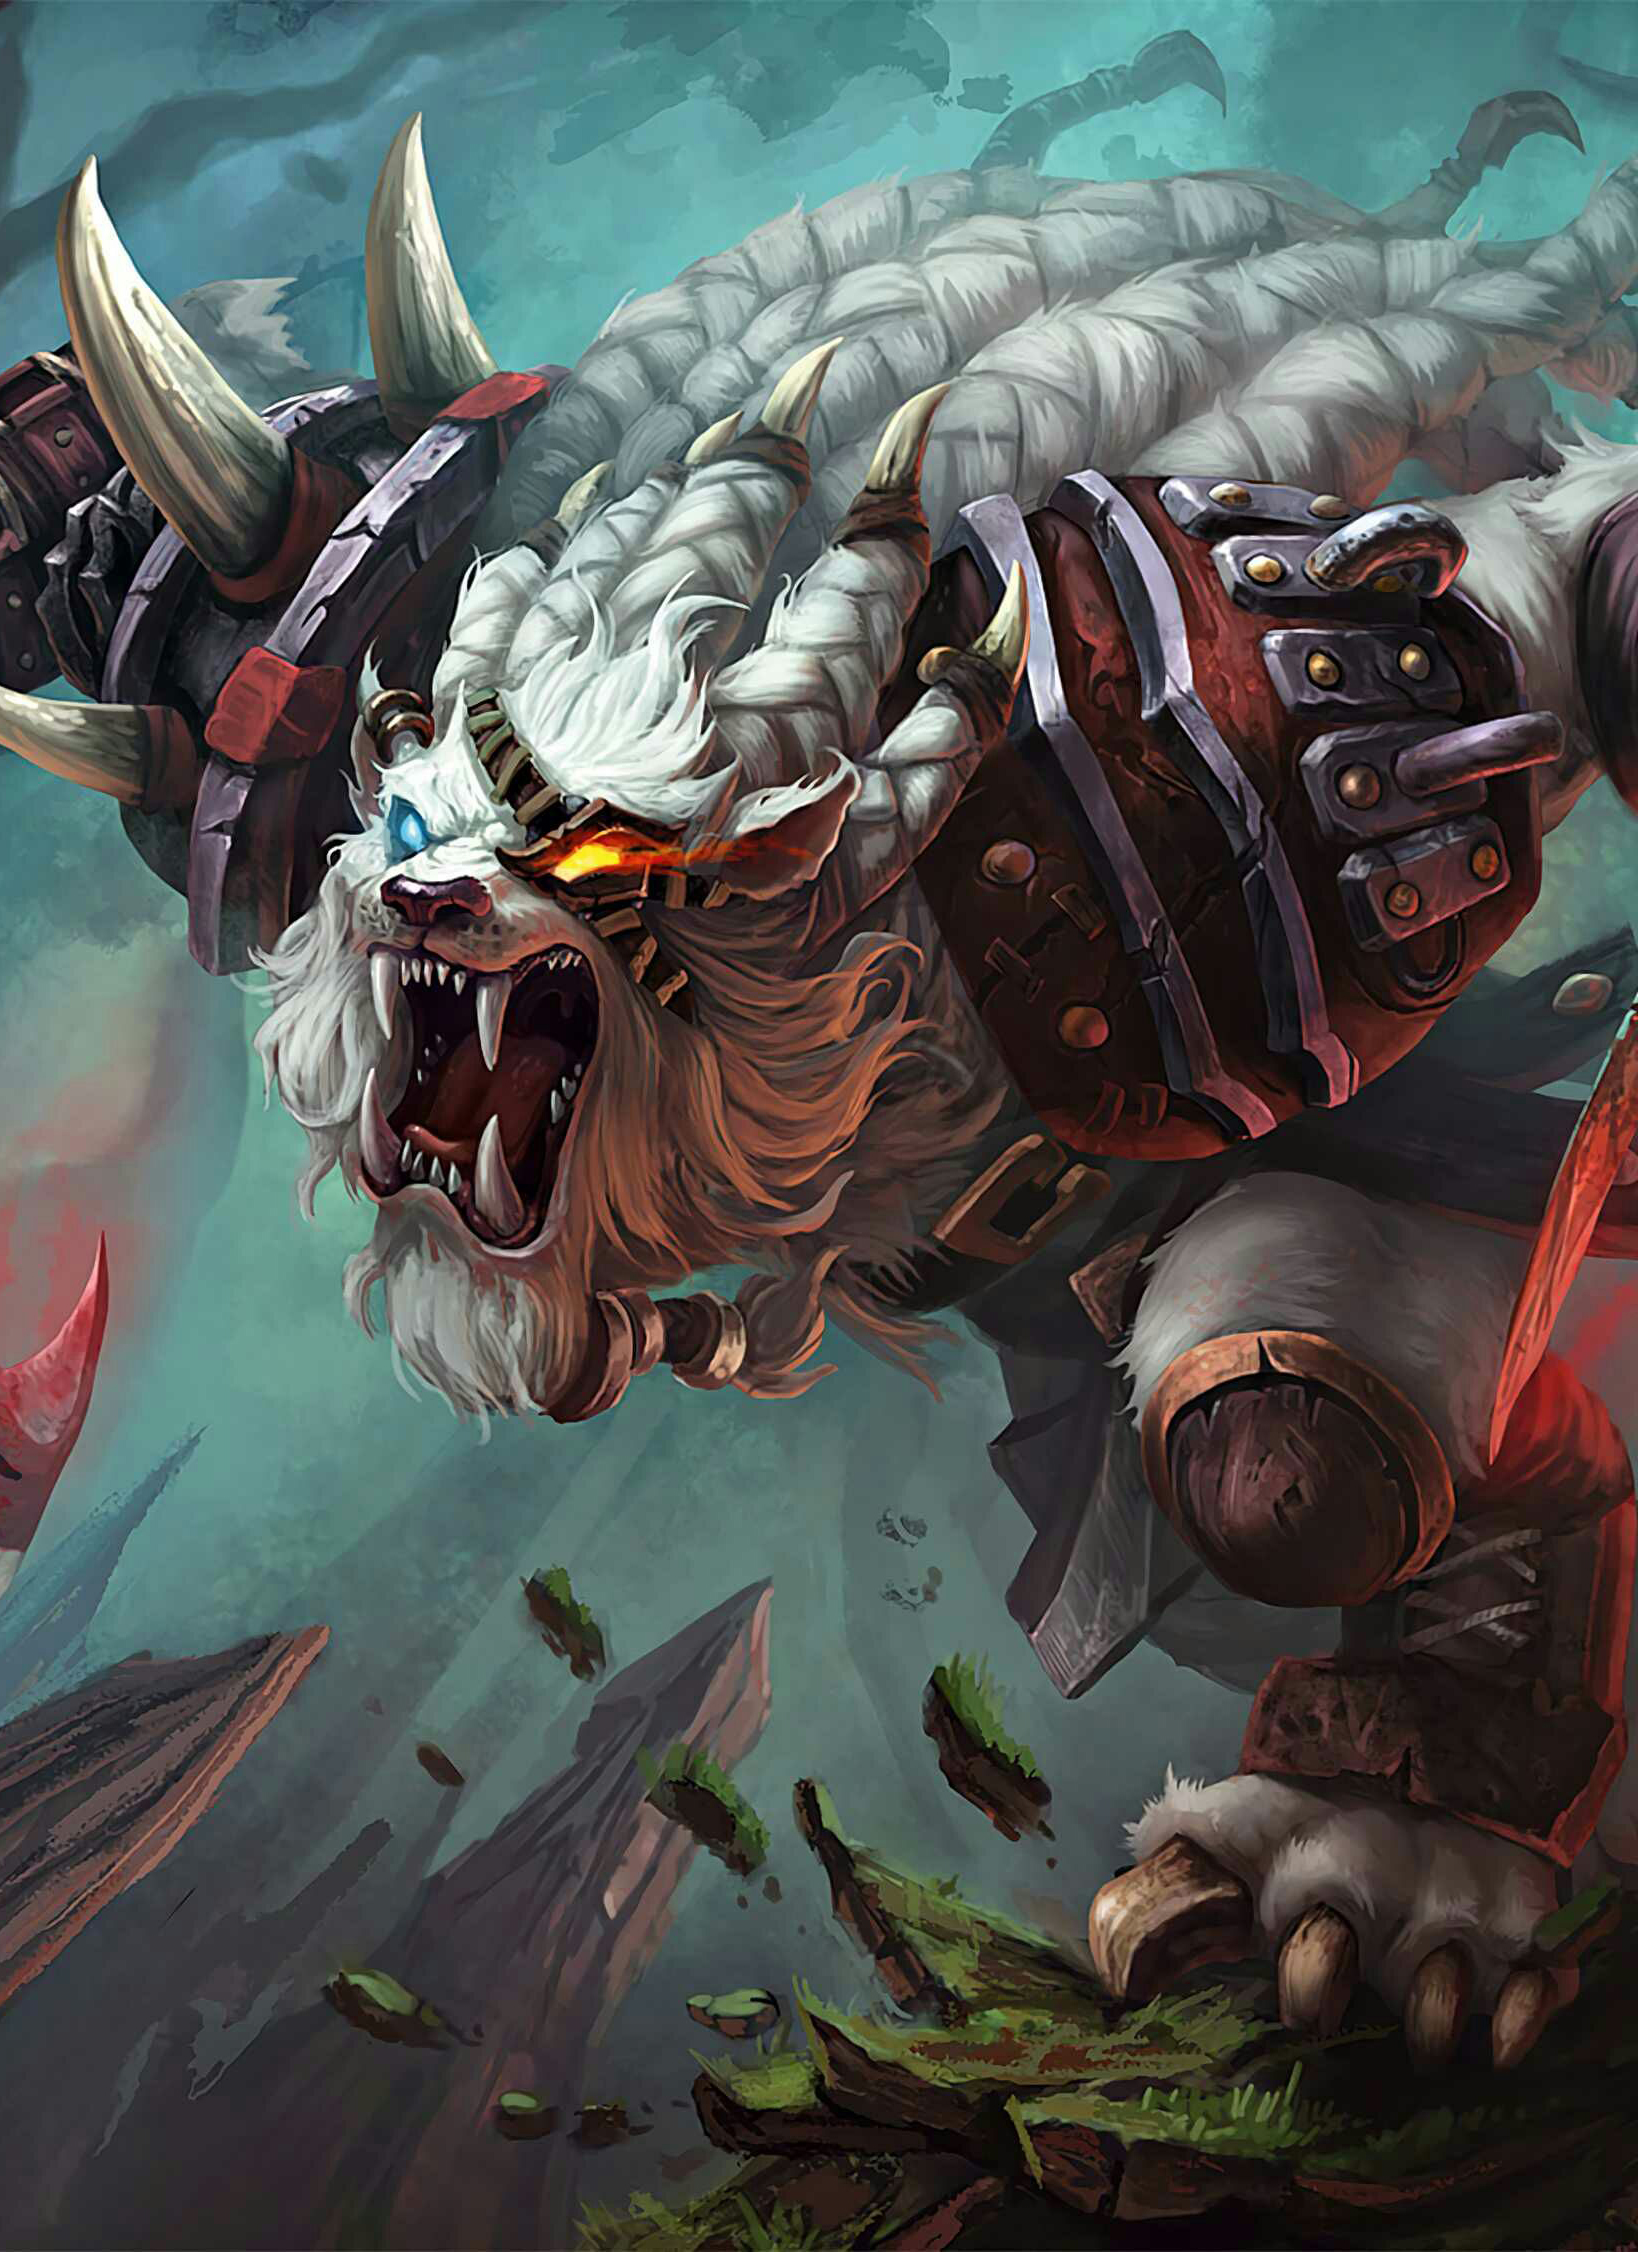 Rengar lol Wallpaper hd